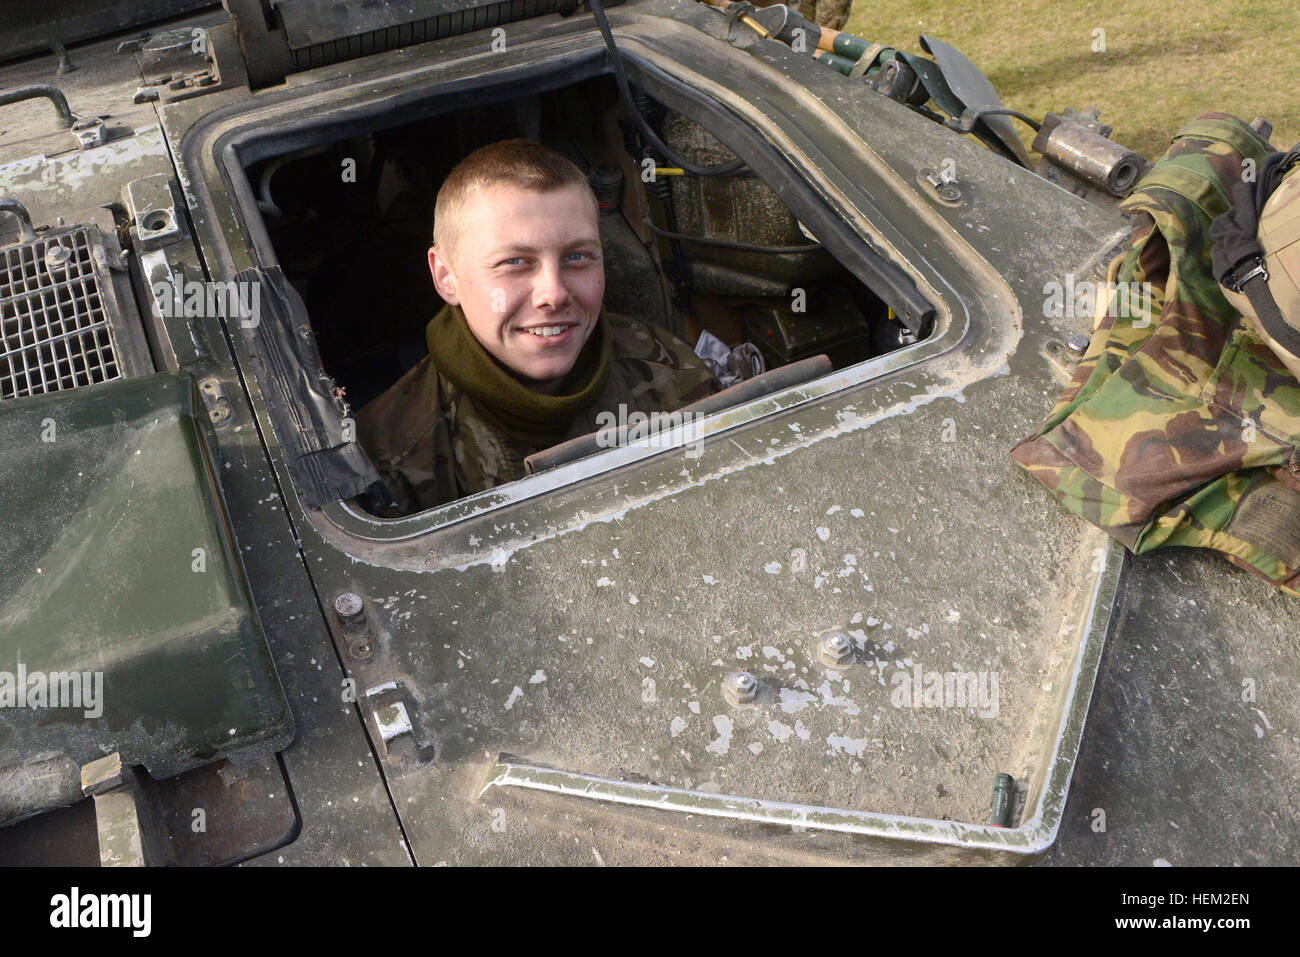 A soldier of the United Kingdom's Mercian Regiment in a Challenger 2 tank drivers seat smiles for the camera - Stock Image